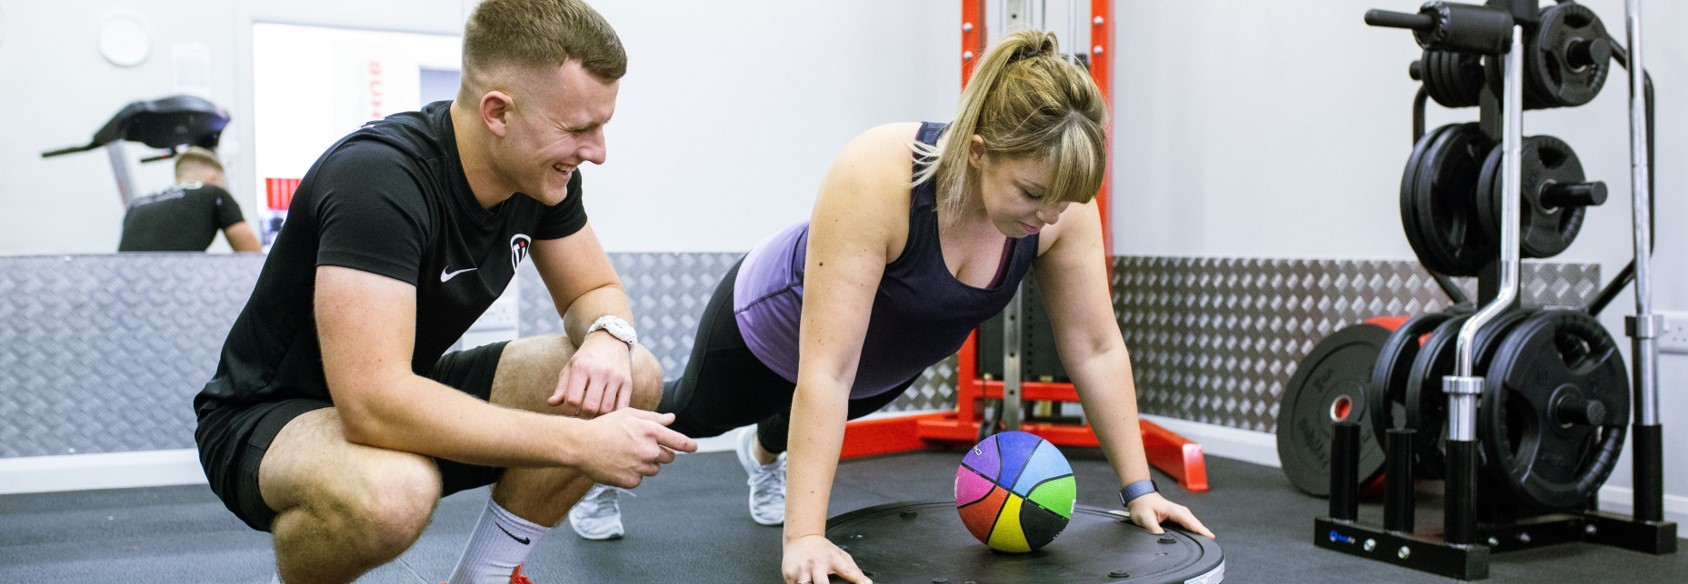 girl receives personal training exercise in biggleswade